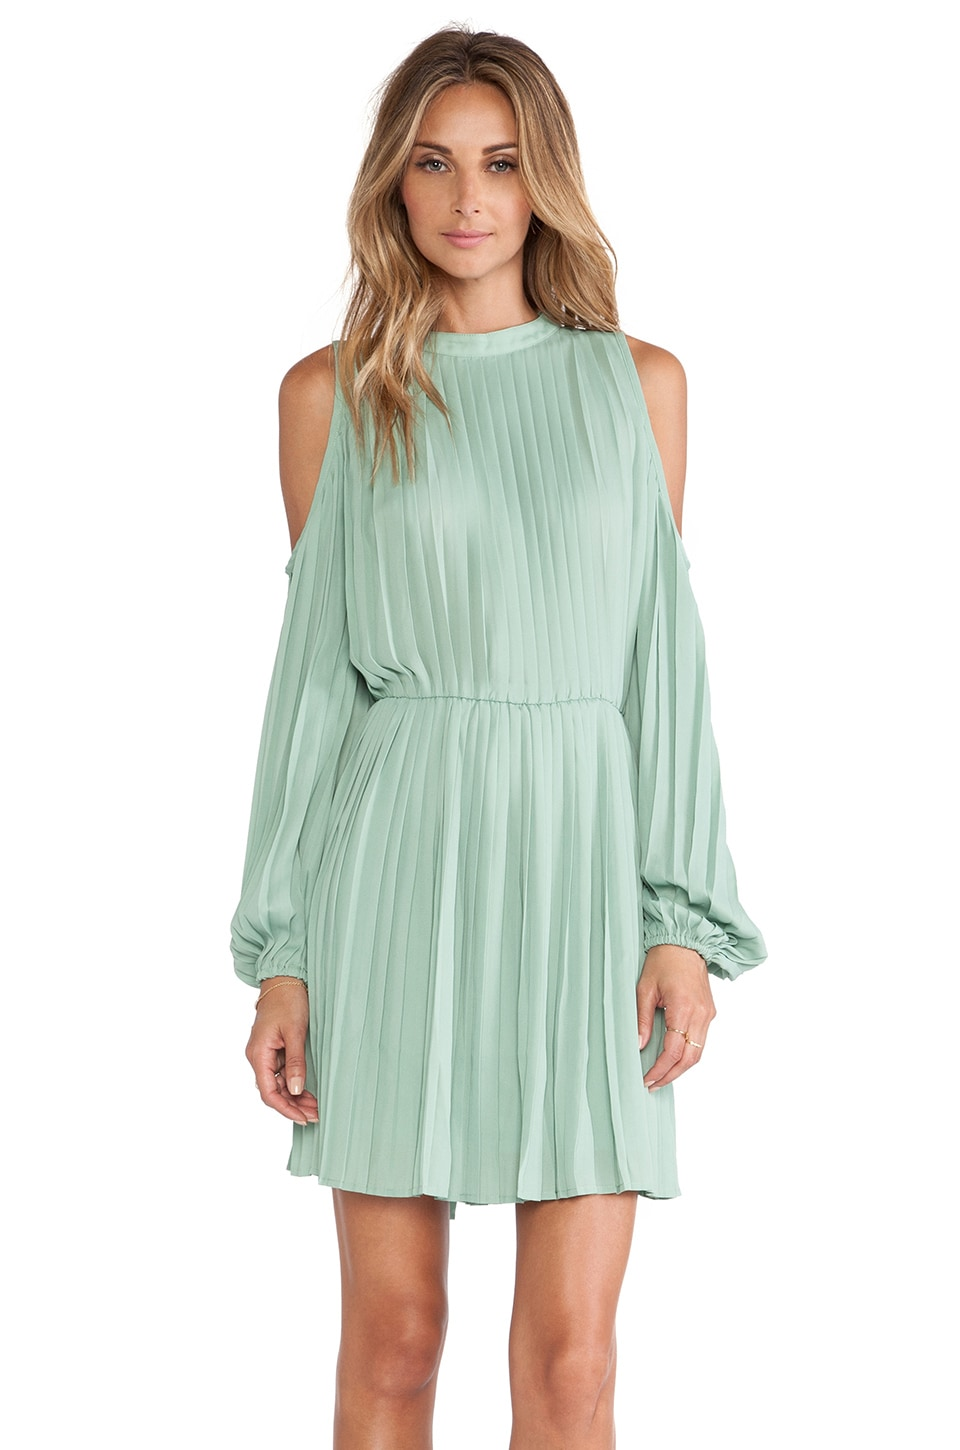 BLAQUE LABEL Cold Shoulder Dress in Seafoam